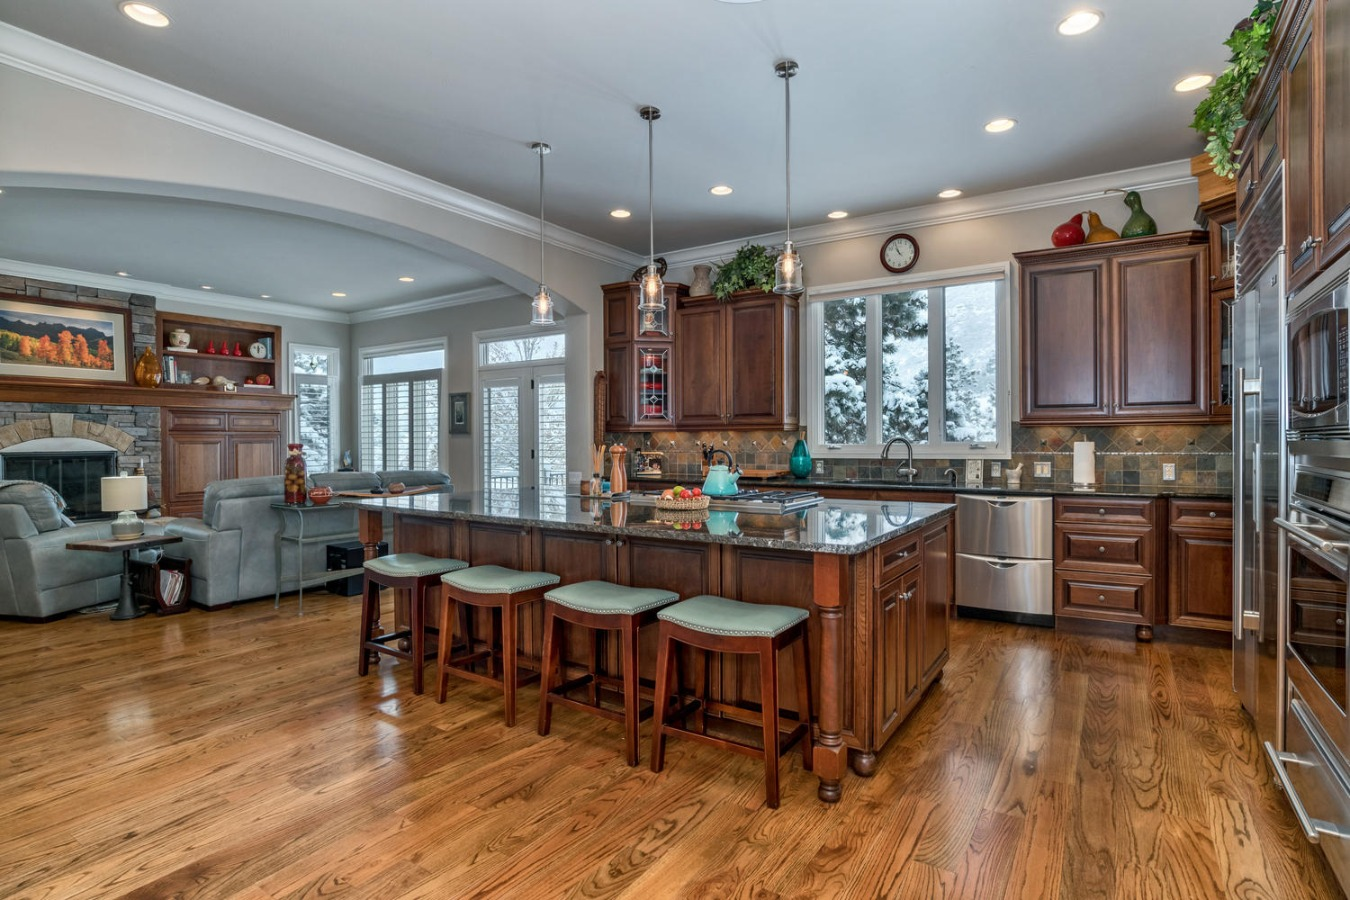 Spacious Gourmet Kitchen is the Heart of This Home